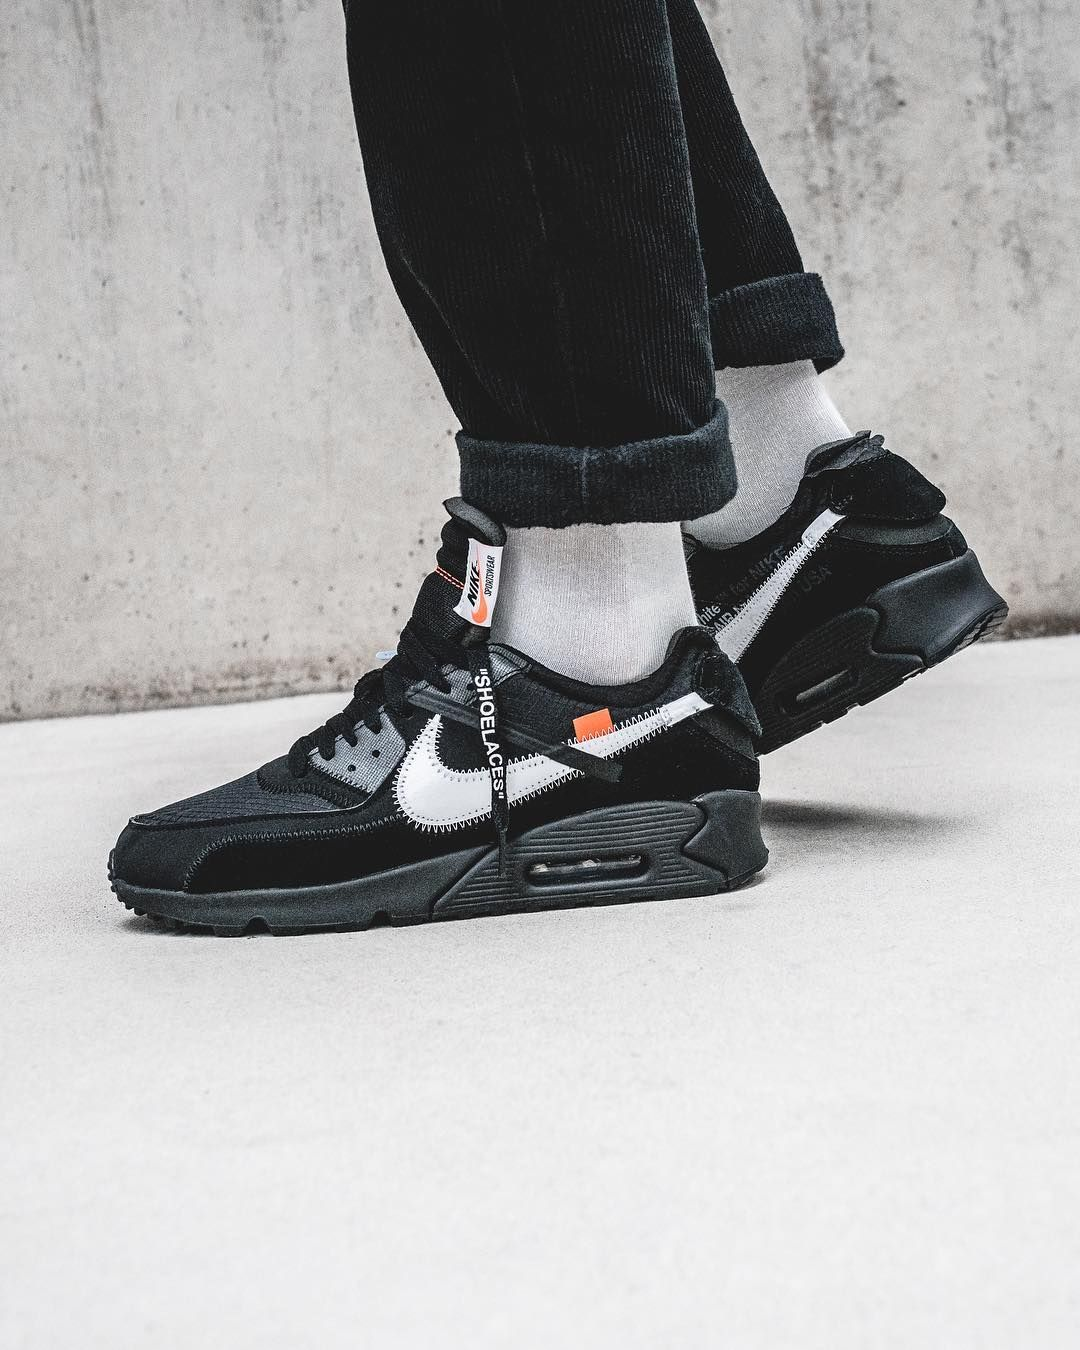 Nike x Off White Air Max 90 'Desert Ore' and 'Black